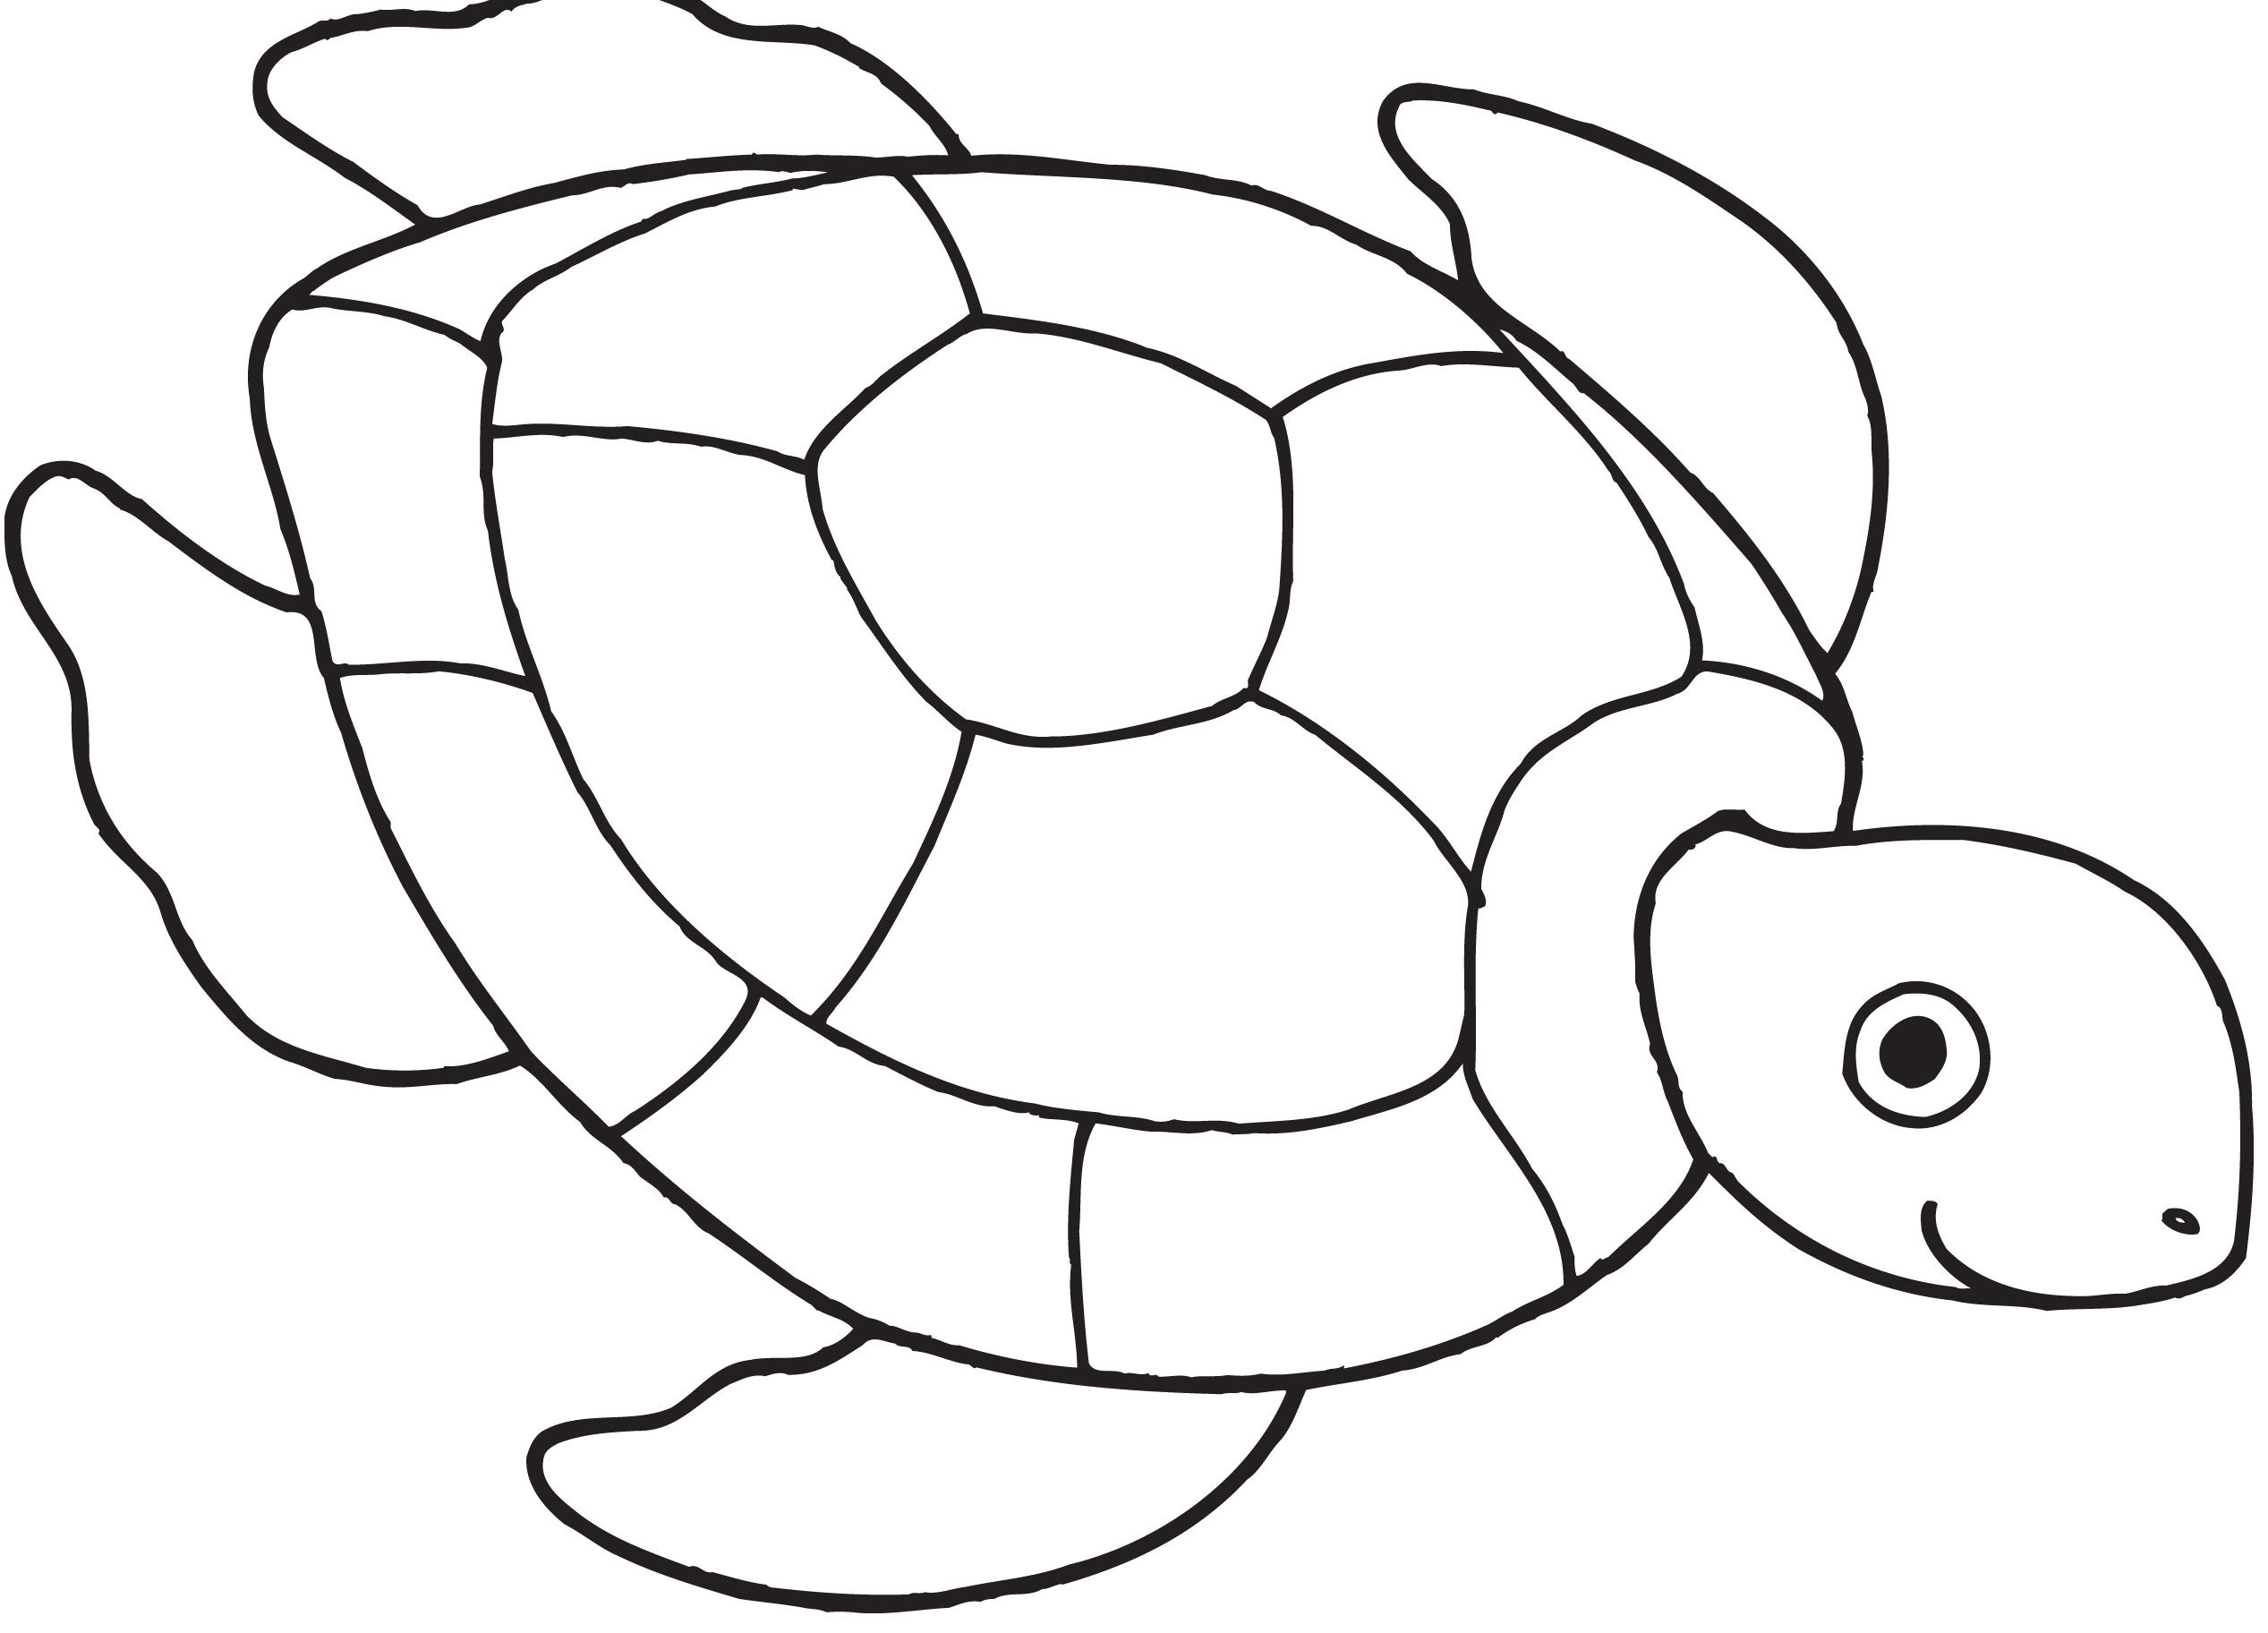 Delicieux Free Sea Turtle Coloring Pages With Sea Page Tweeting Cities Free